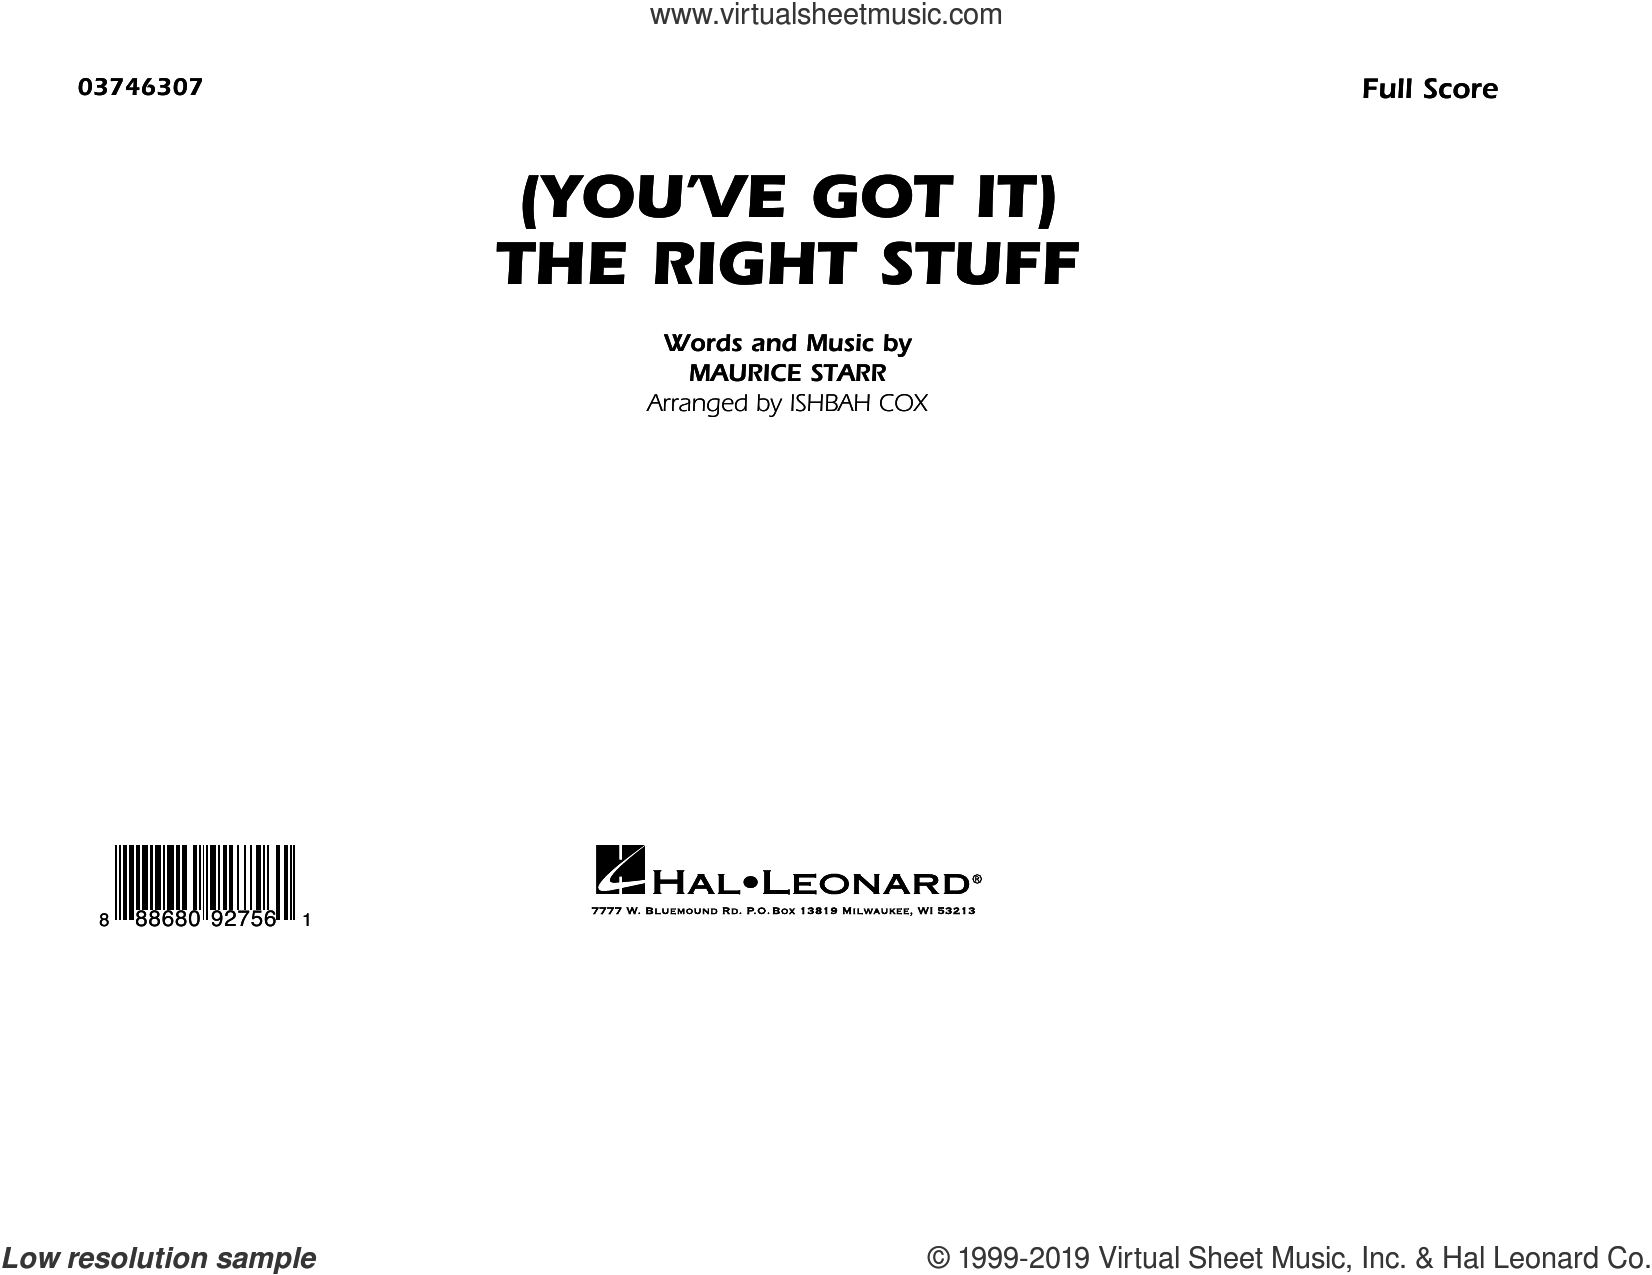 (You've Got It) The Right Stuff (arr. Ishbah Cox) (COMPLETE) sheet music for marching band by Ishbah Cox, Maurice Starr and New Kids On The Block, intermediate skill level